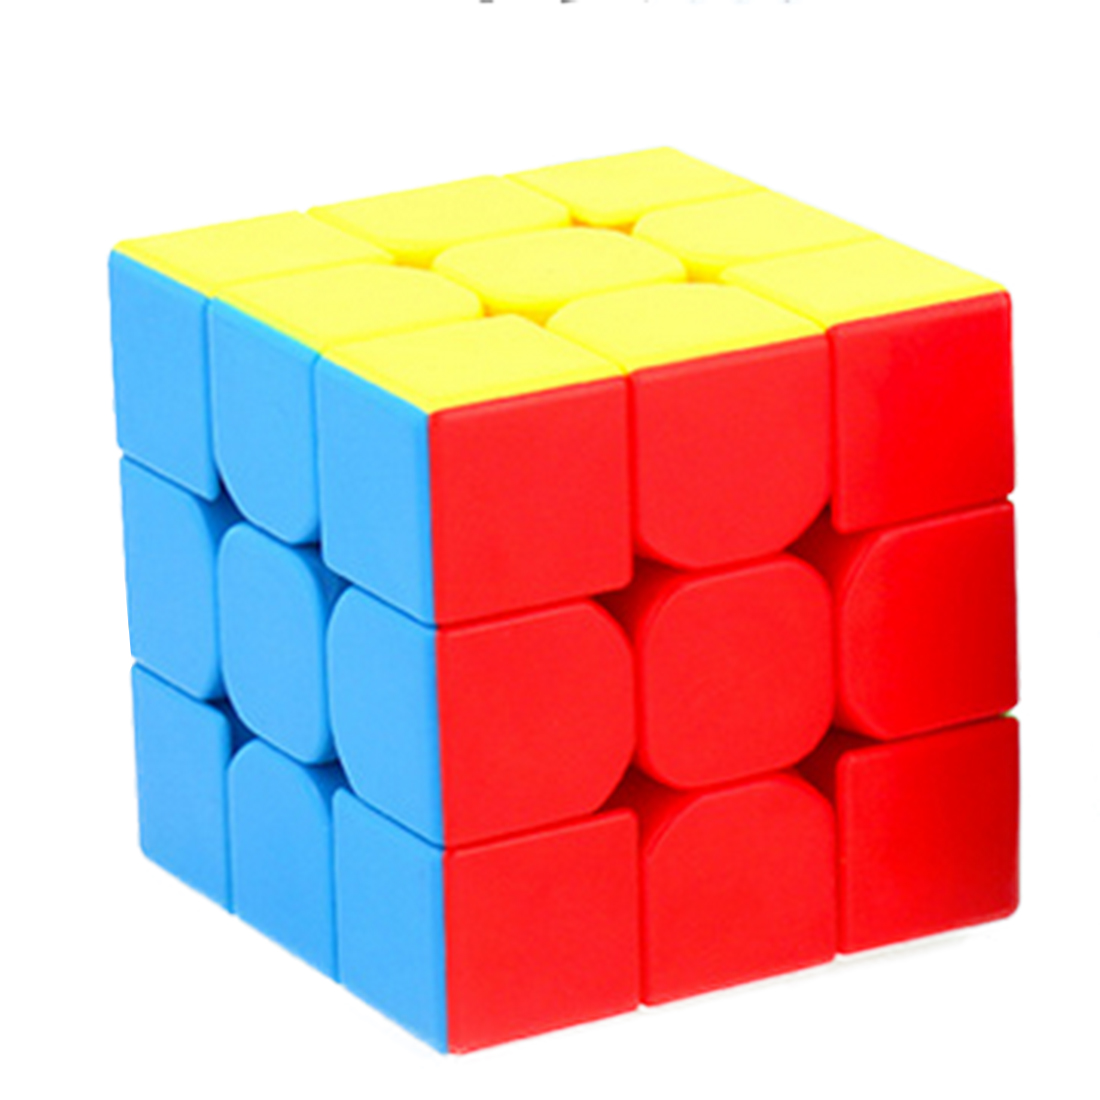 Moyu Cubo Magico 45mm Mini 3x3x3 Three Layers Magic Cube Speed Cube Puzzle Cube Cool Toys For Children Adult Cubing Classroom